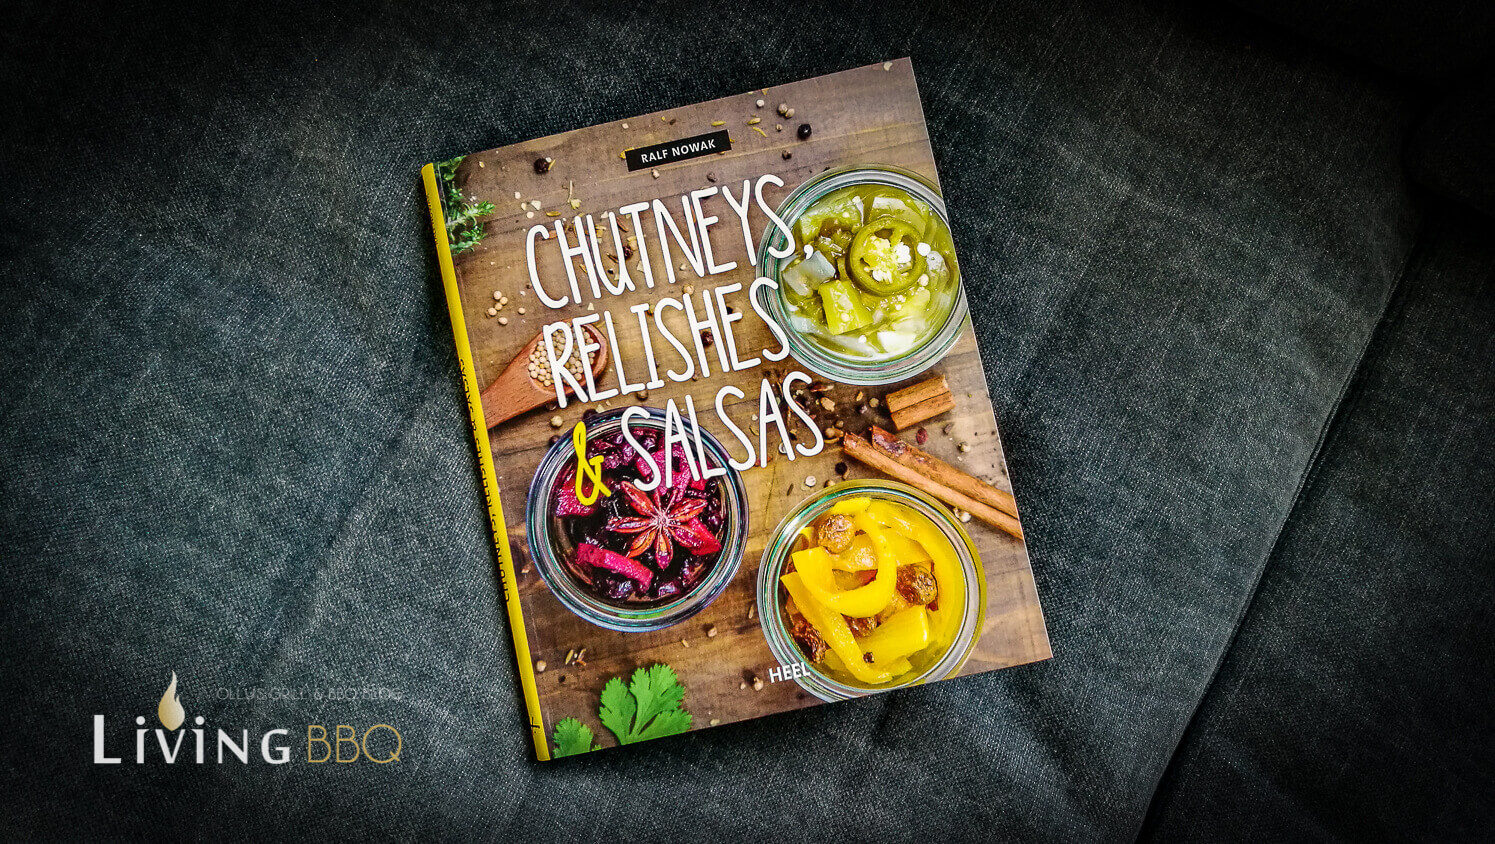 Chutneys, Relishes & Salsas grillrezepte_Chutney Relishes Salsas 14 von 4